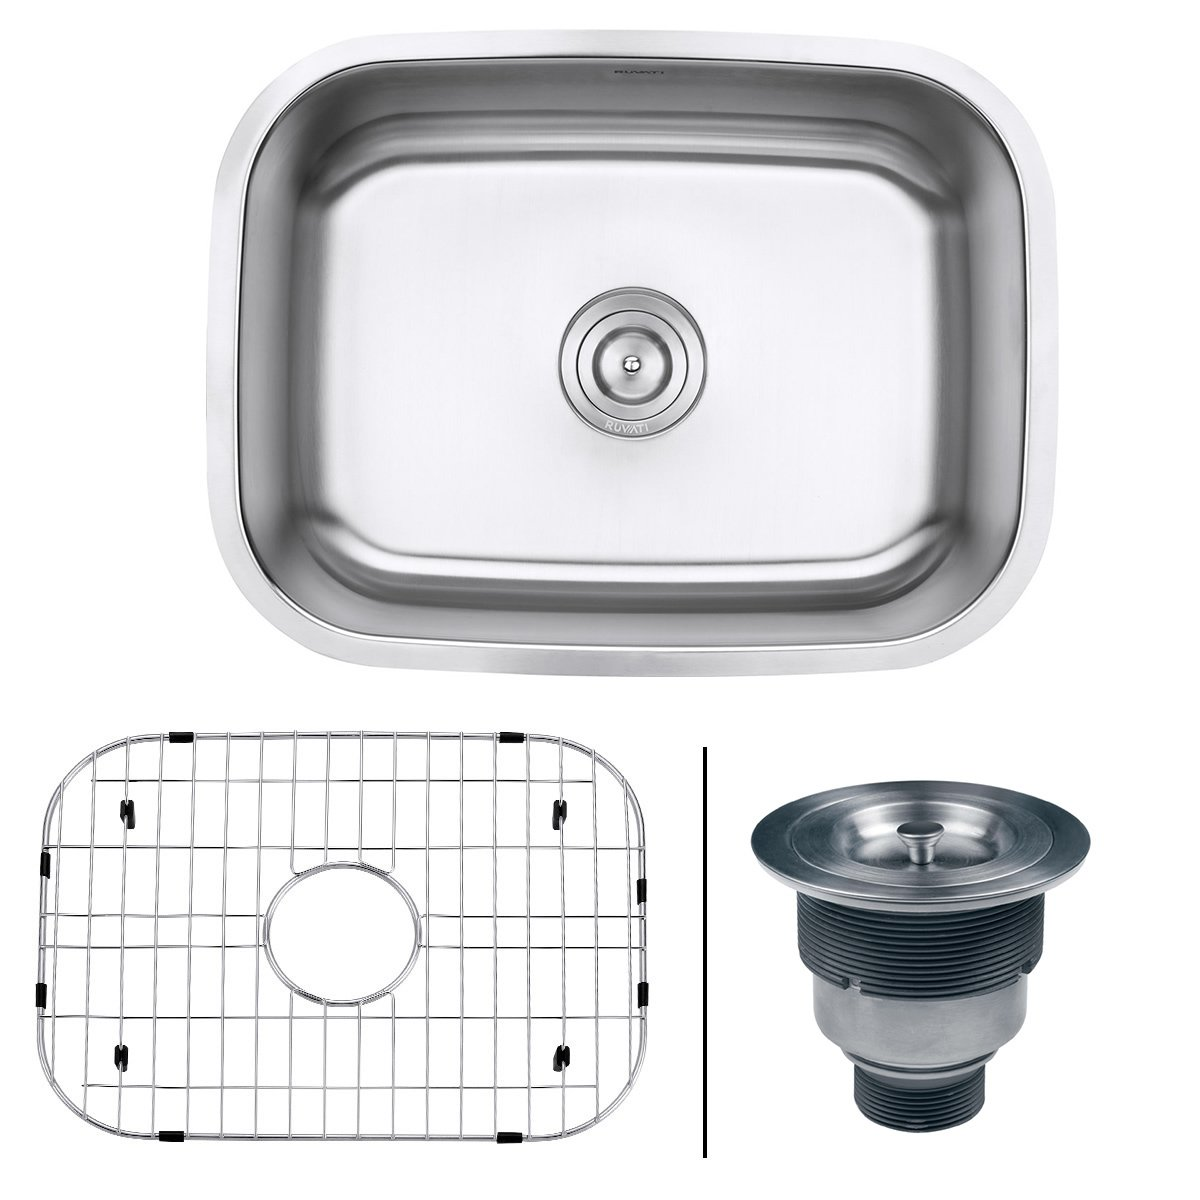 "Ruvati RVM4132 Undermount 16 Gauge 24"" Kitchen Single Bowl Sink, Stainless Steel"